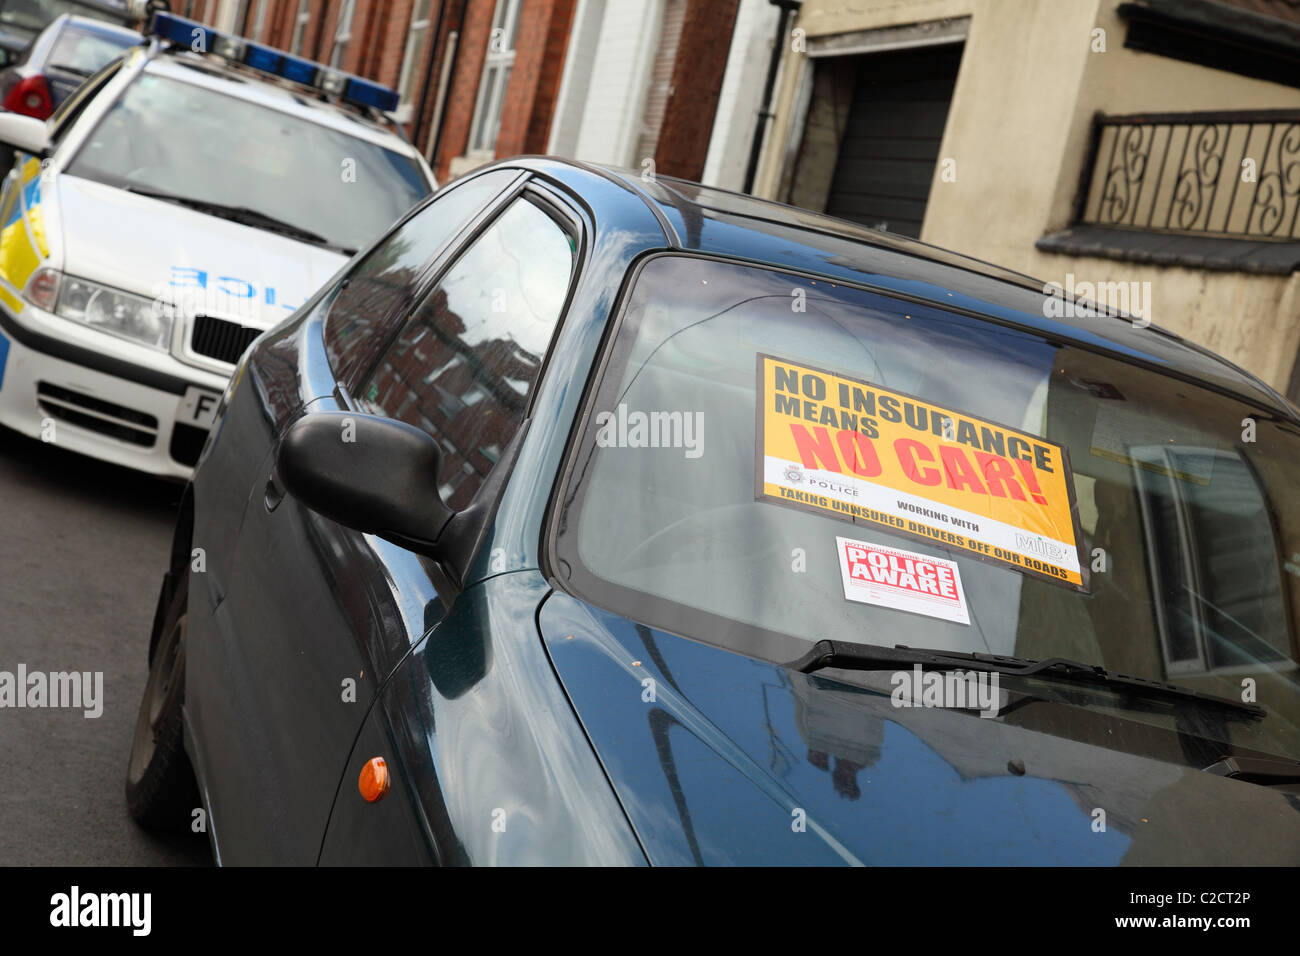 Police seize an uninsured car on a street in Nottingham, England, U.K. - Stock Image